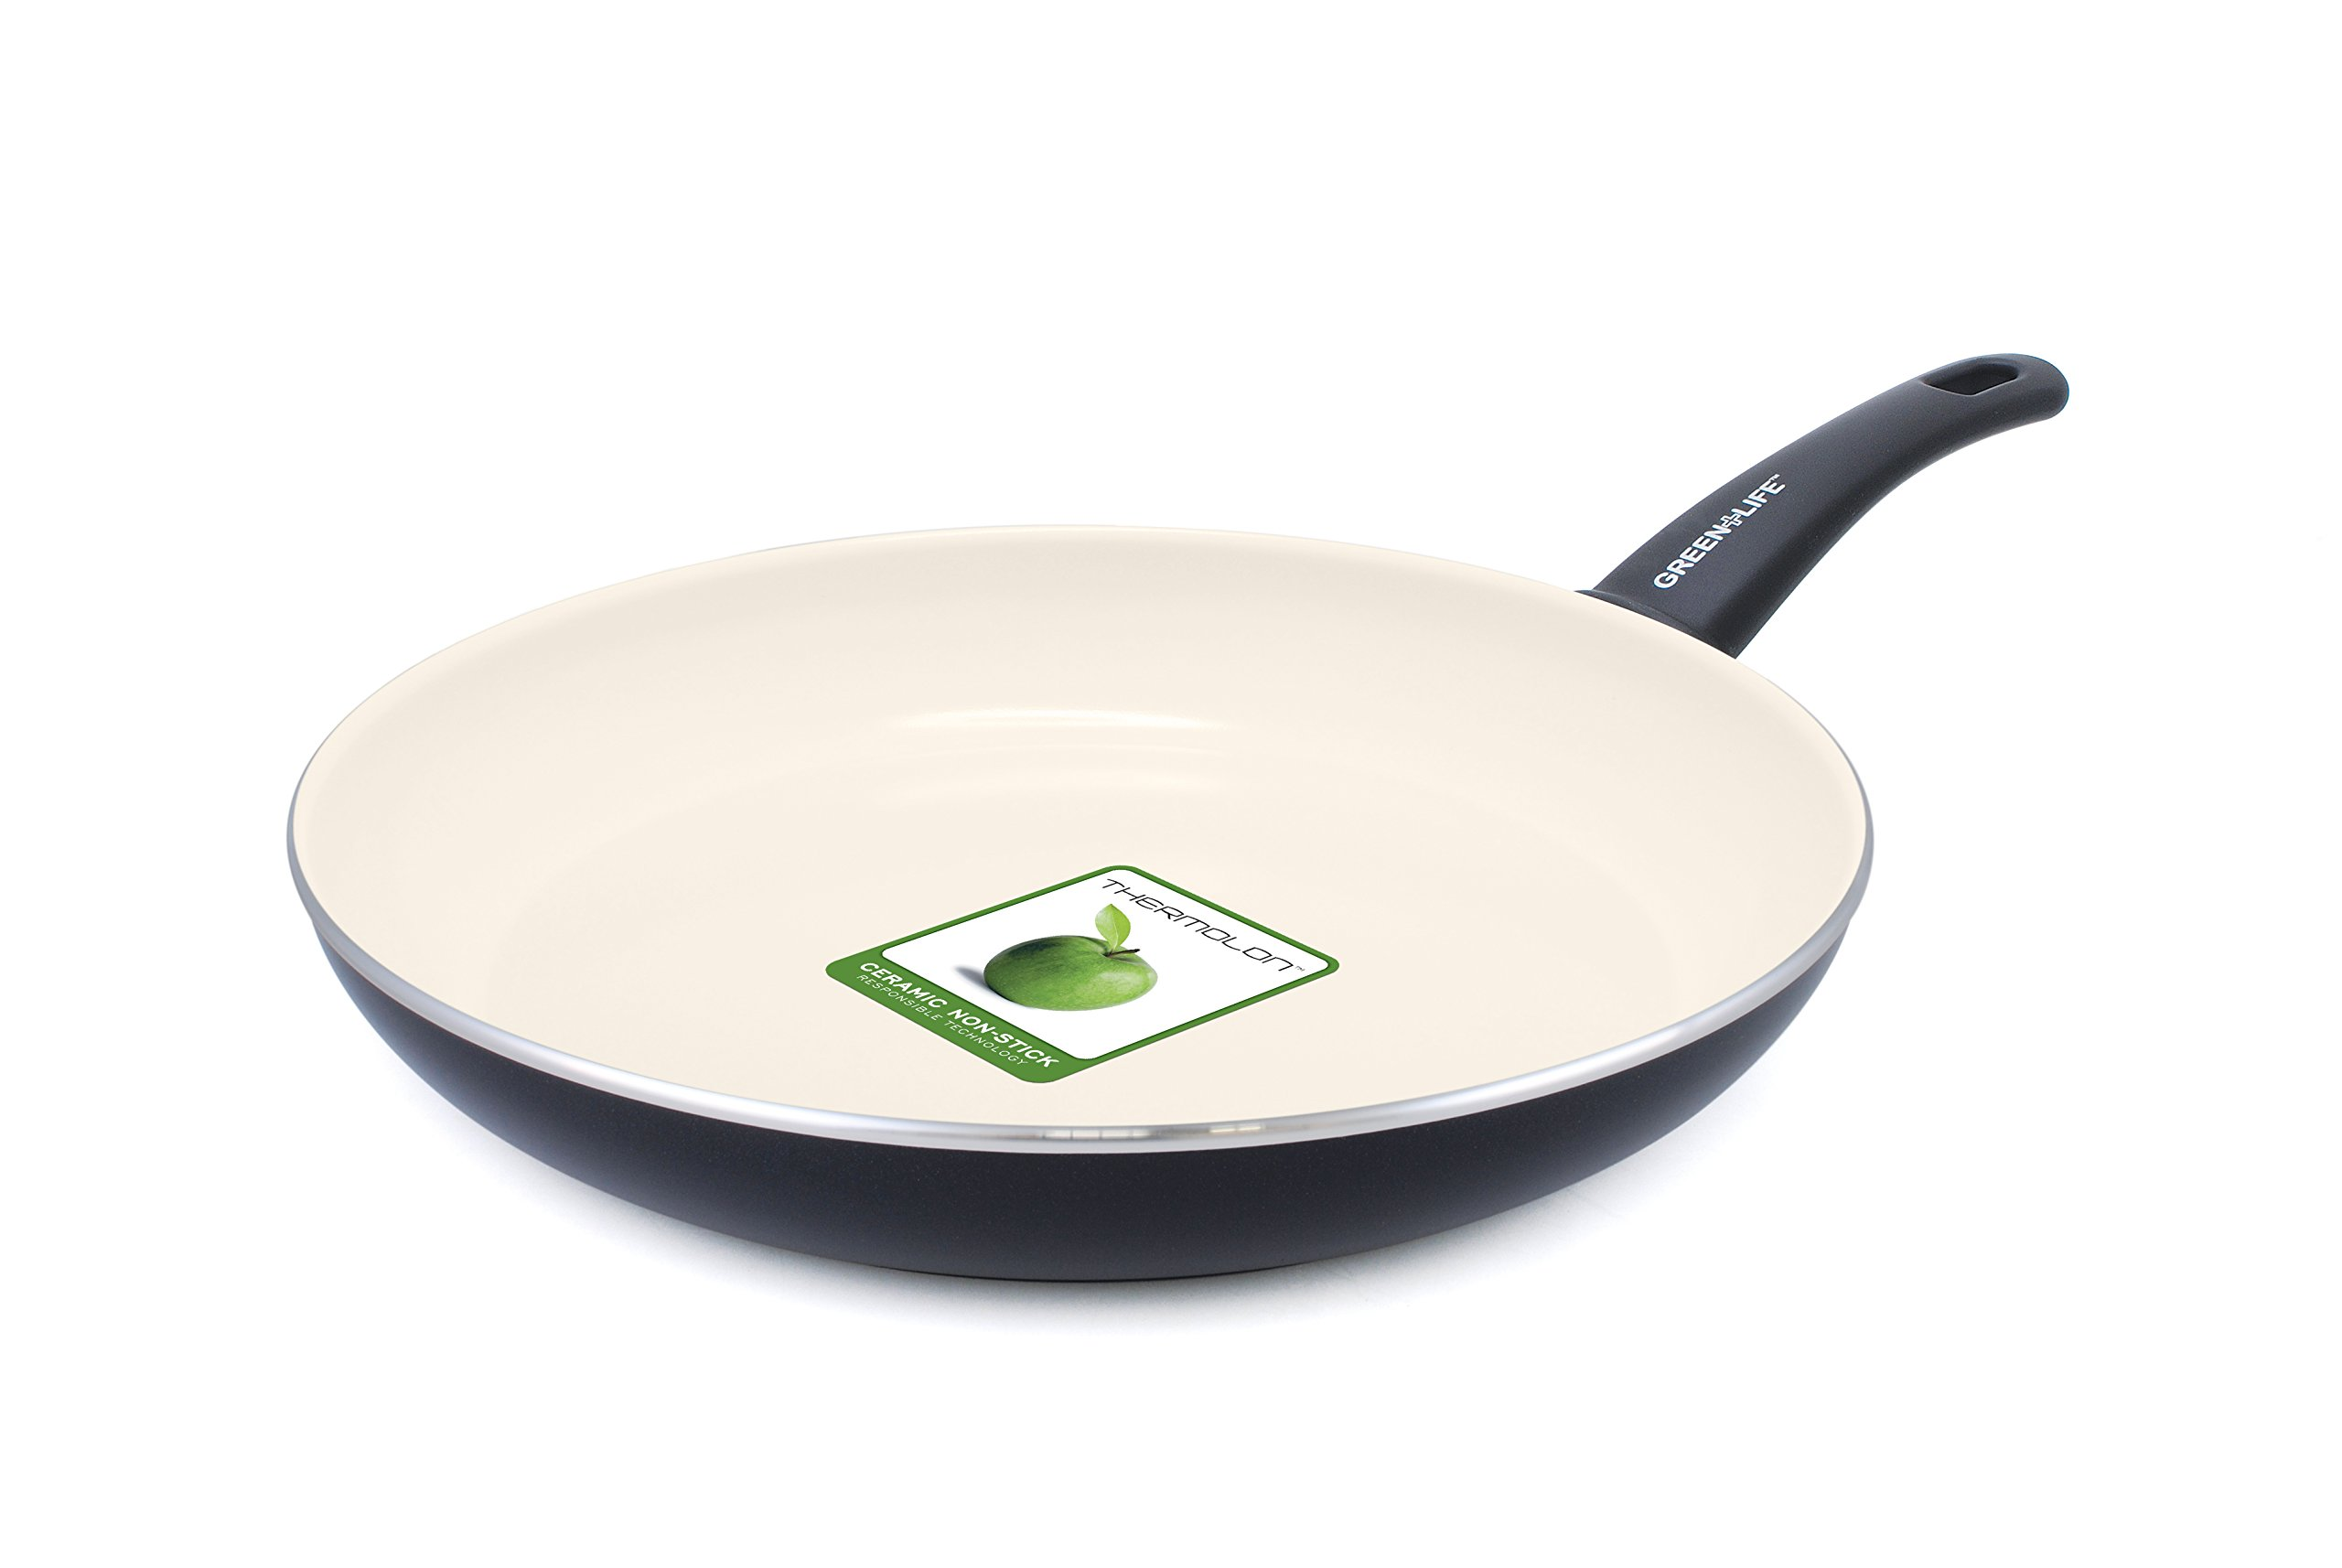 GreenLife Soft Grip 8'' Ceramic Non-Stick Open Frypan, Black